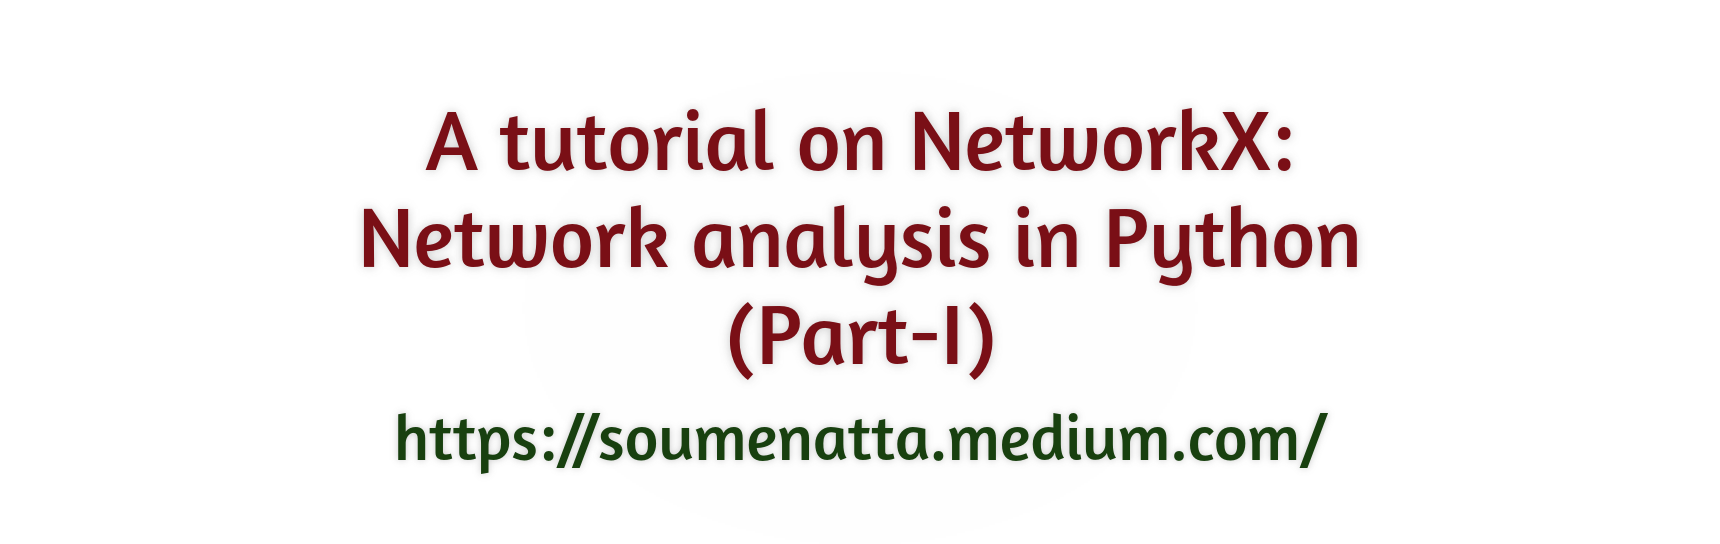 A Tutorial on NetworkX: Network Analysis in Python (Part-I)